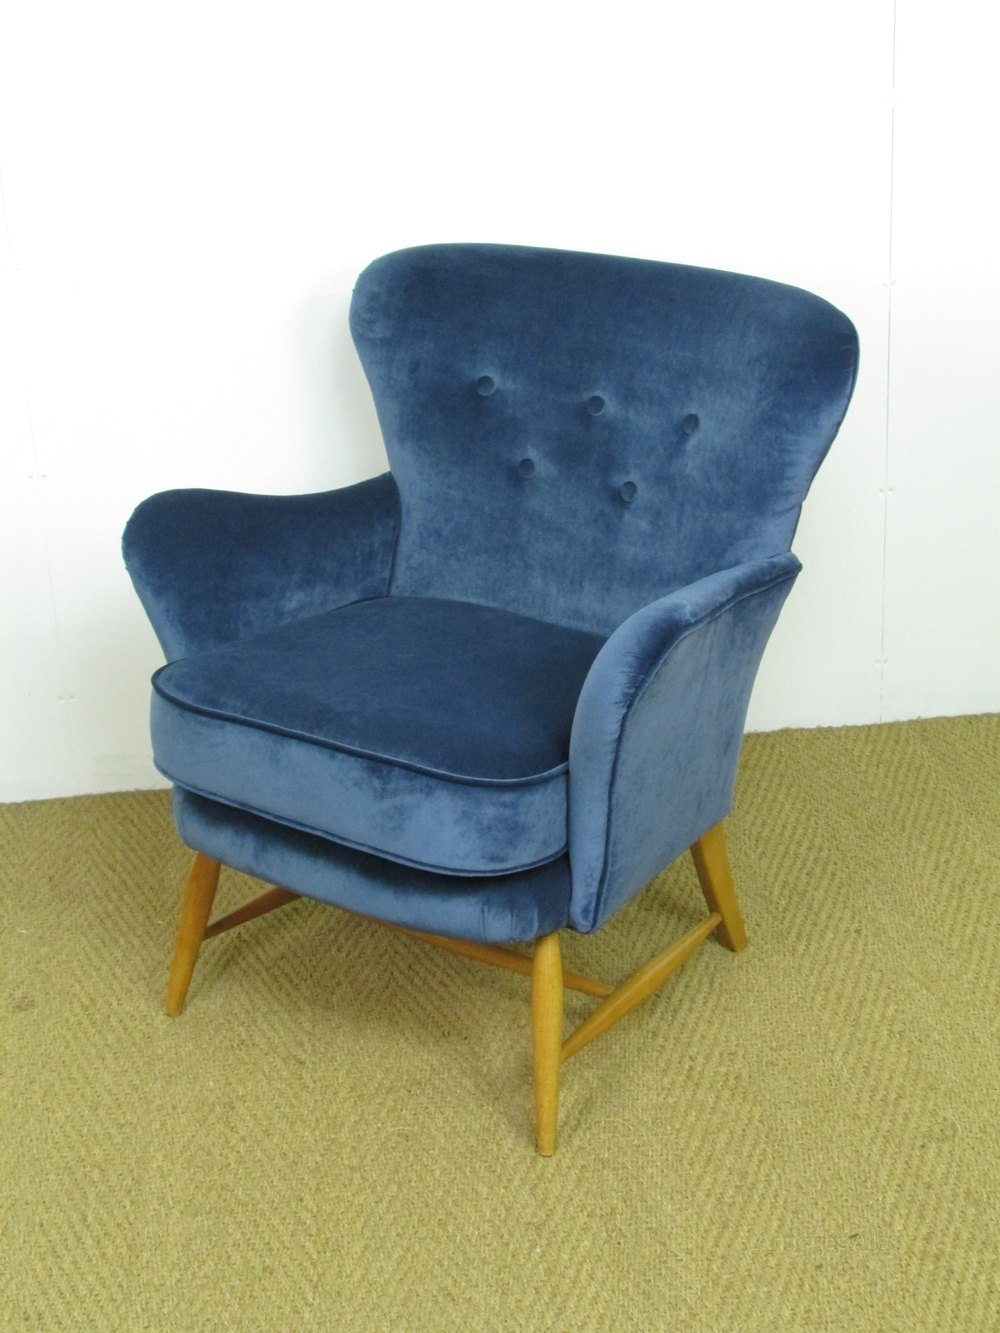 Antiques Atlas - Early Ercol Windsor Tub Chair